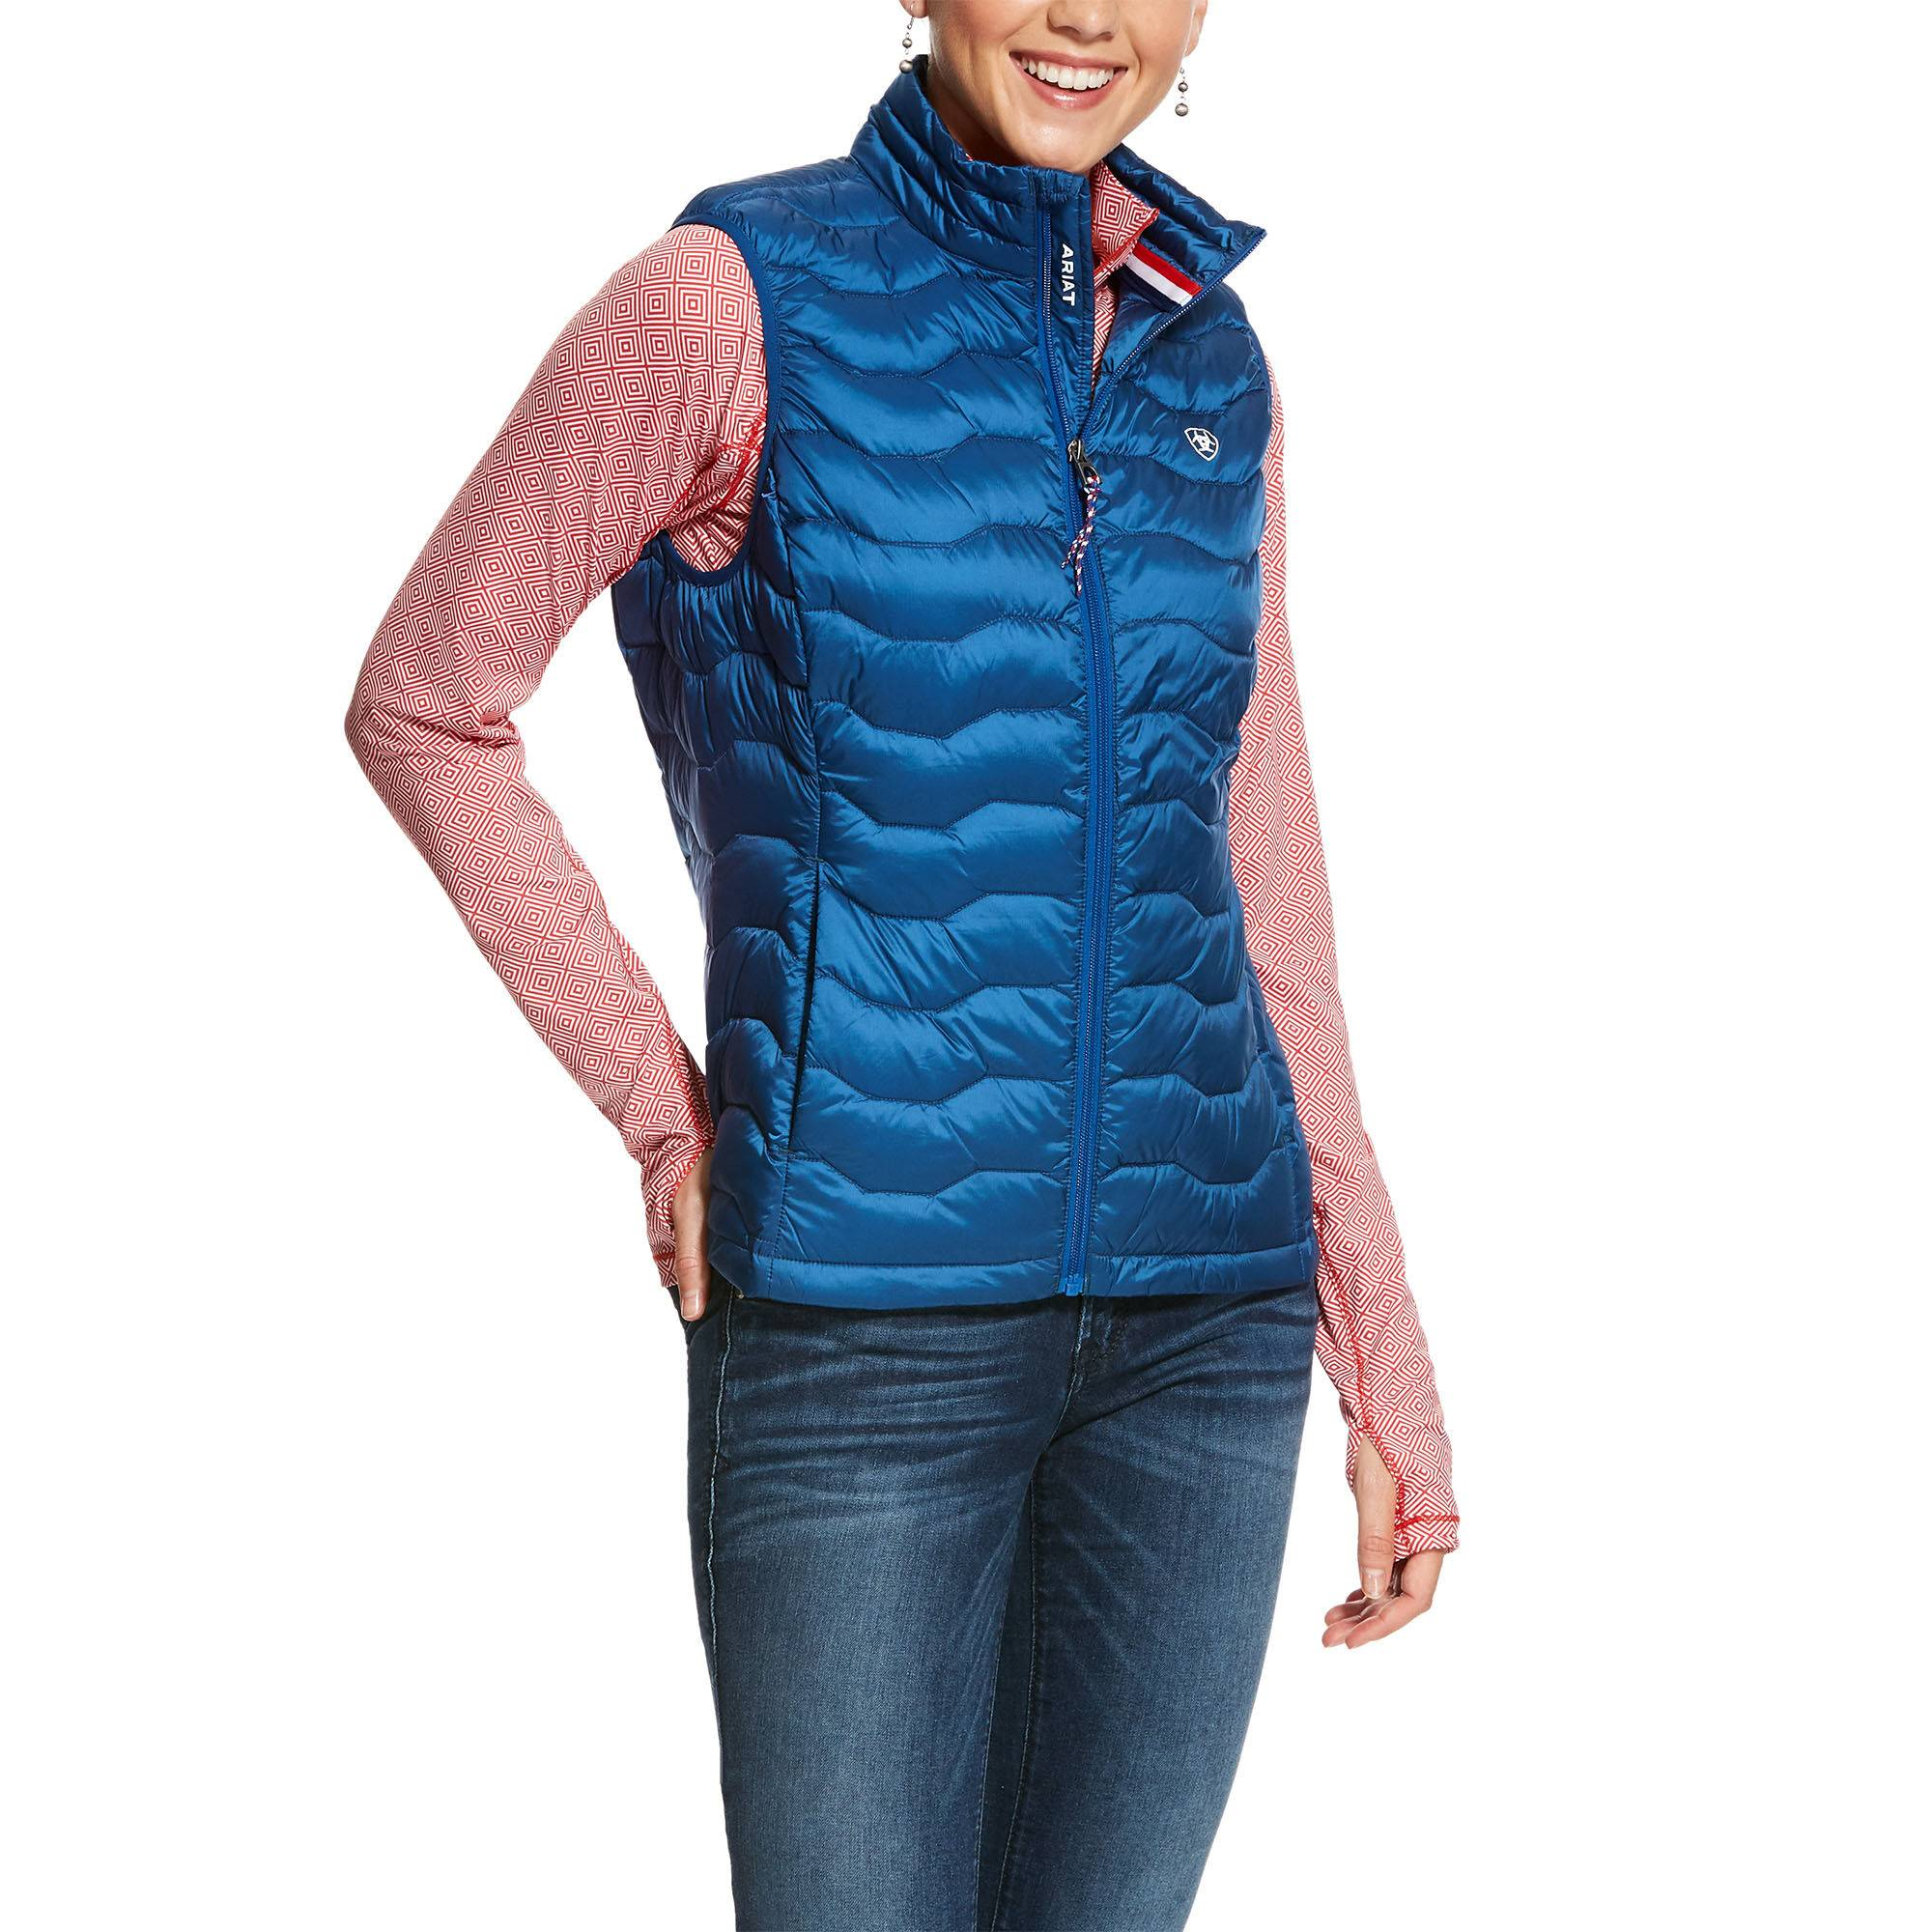 Ariat Women's Ideal 3.0 Down Vest in Vertical Blue, Size Medium, by Ariat